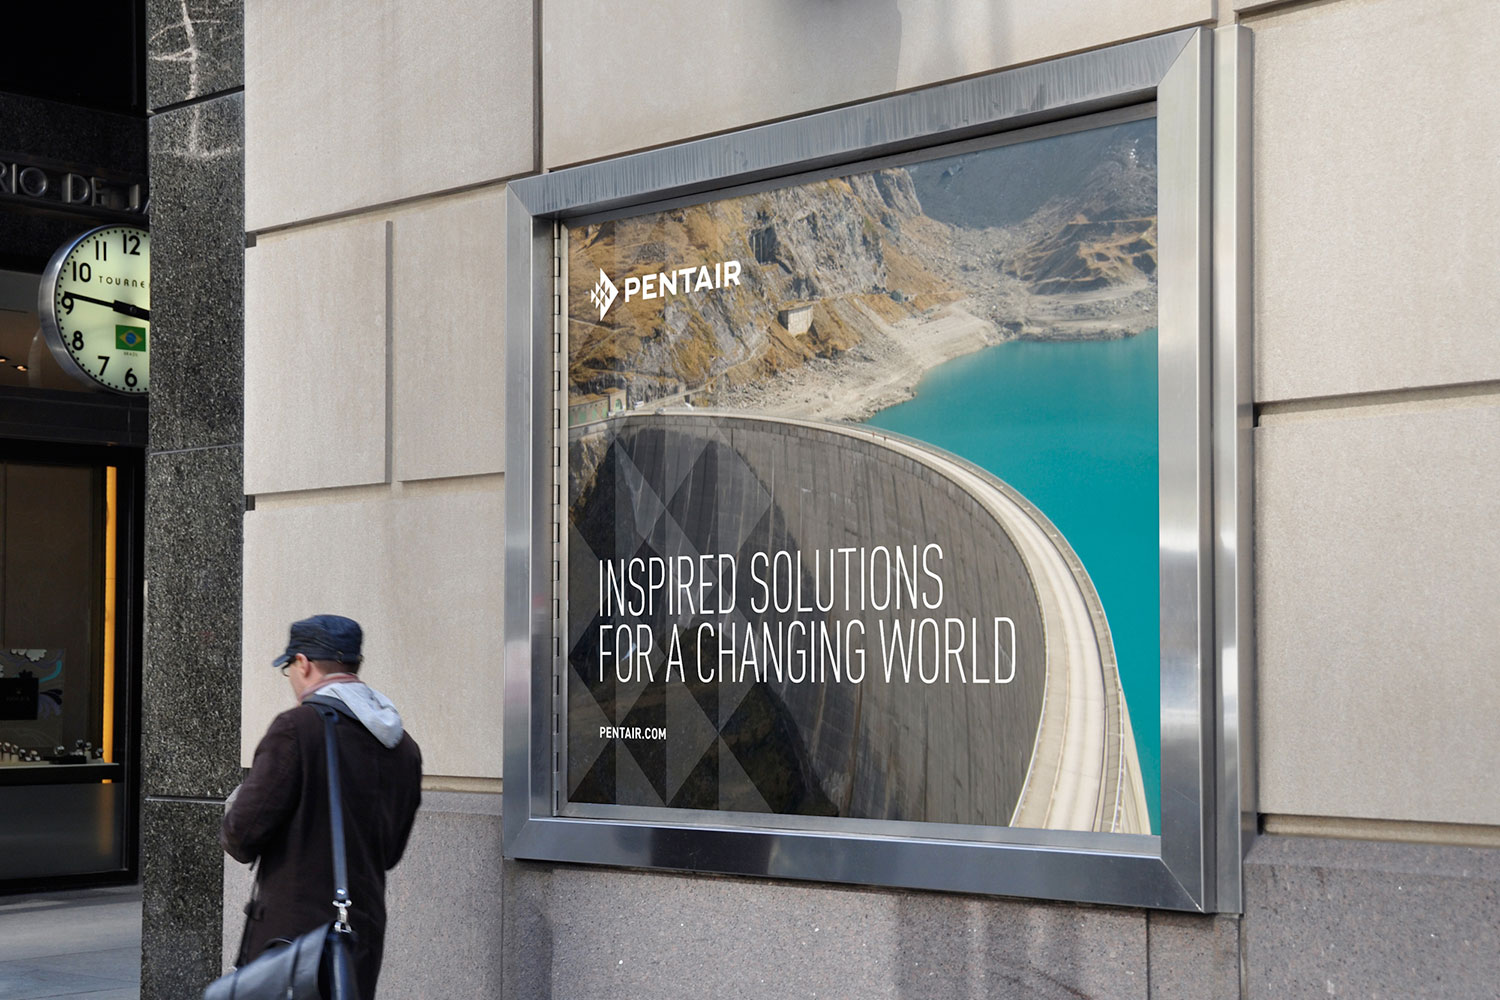 Pentair framed outdoor poster: Inspired Solutions for A Changing World